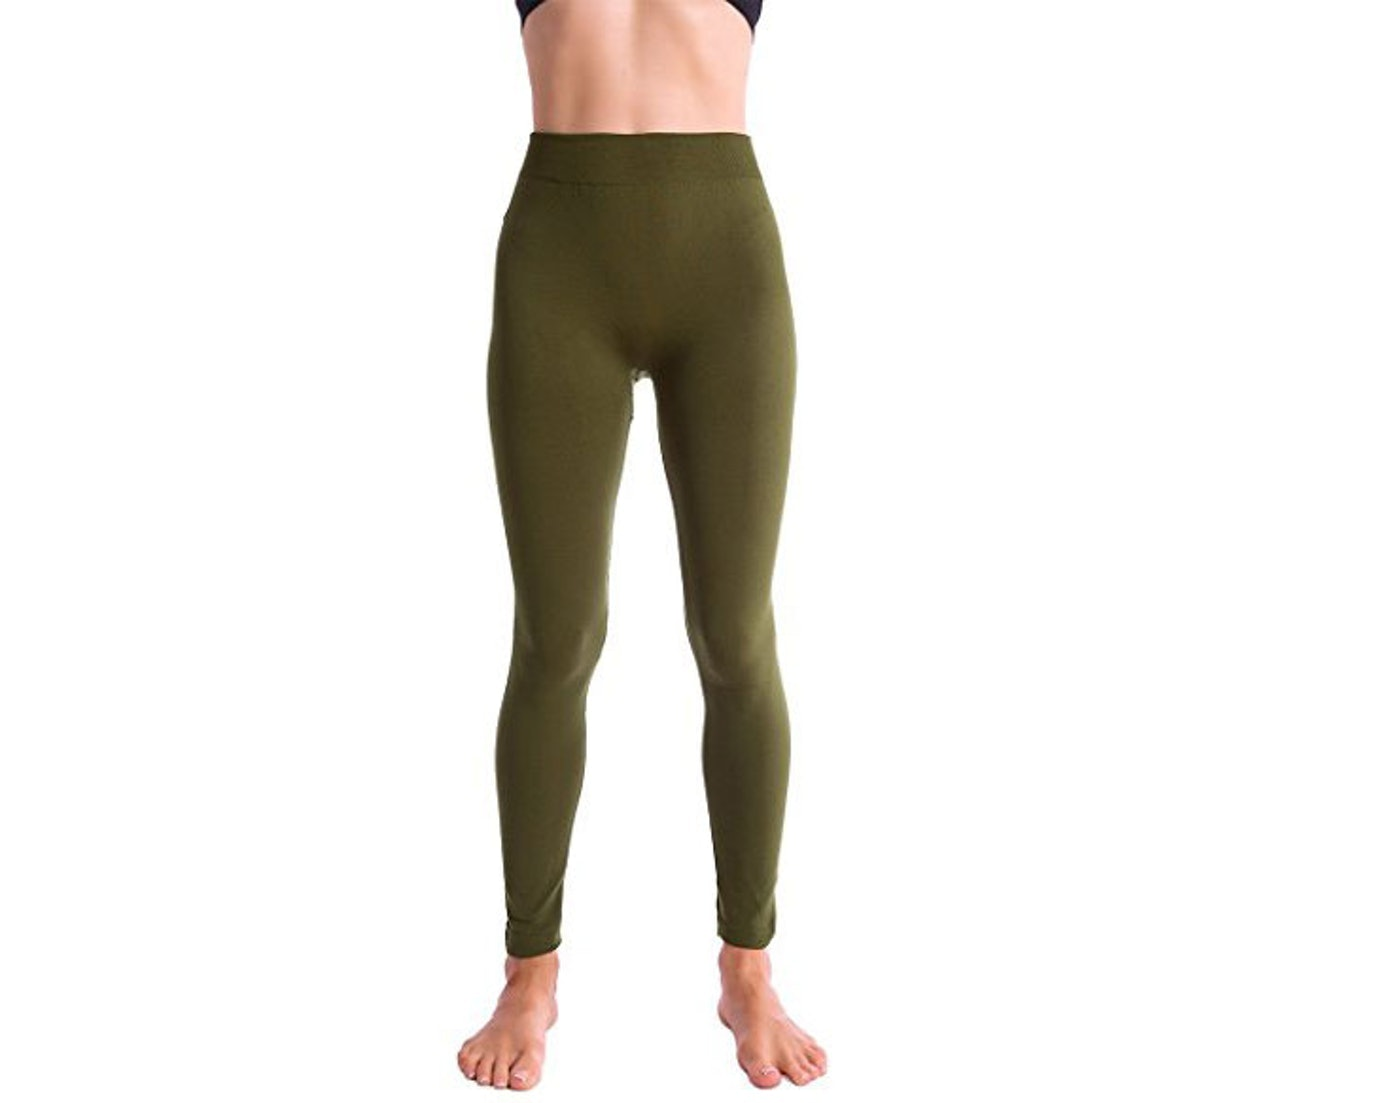 ec53505b4f1fc5 12 Leggings That Aren't See Through